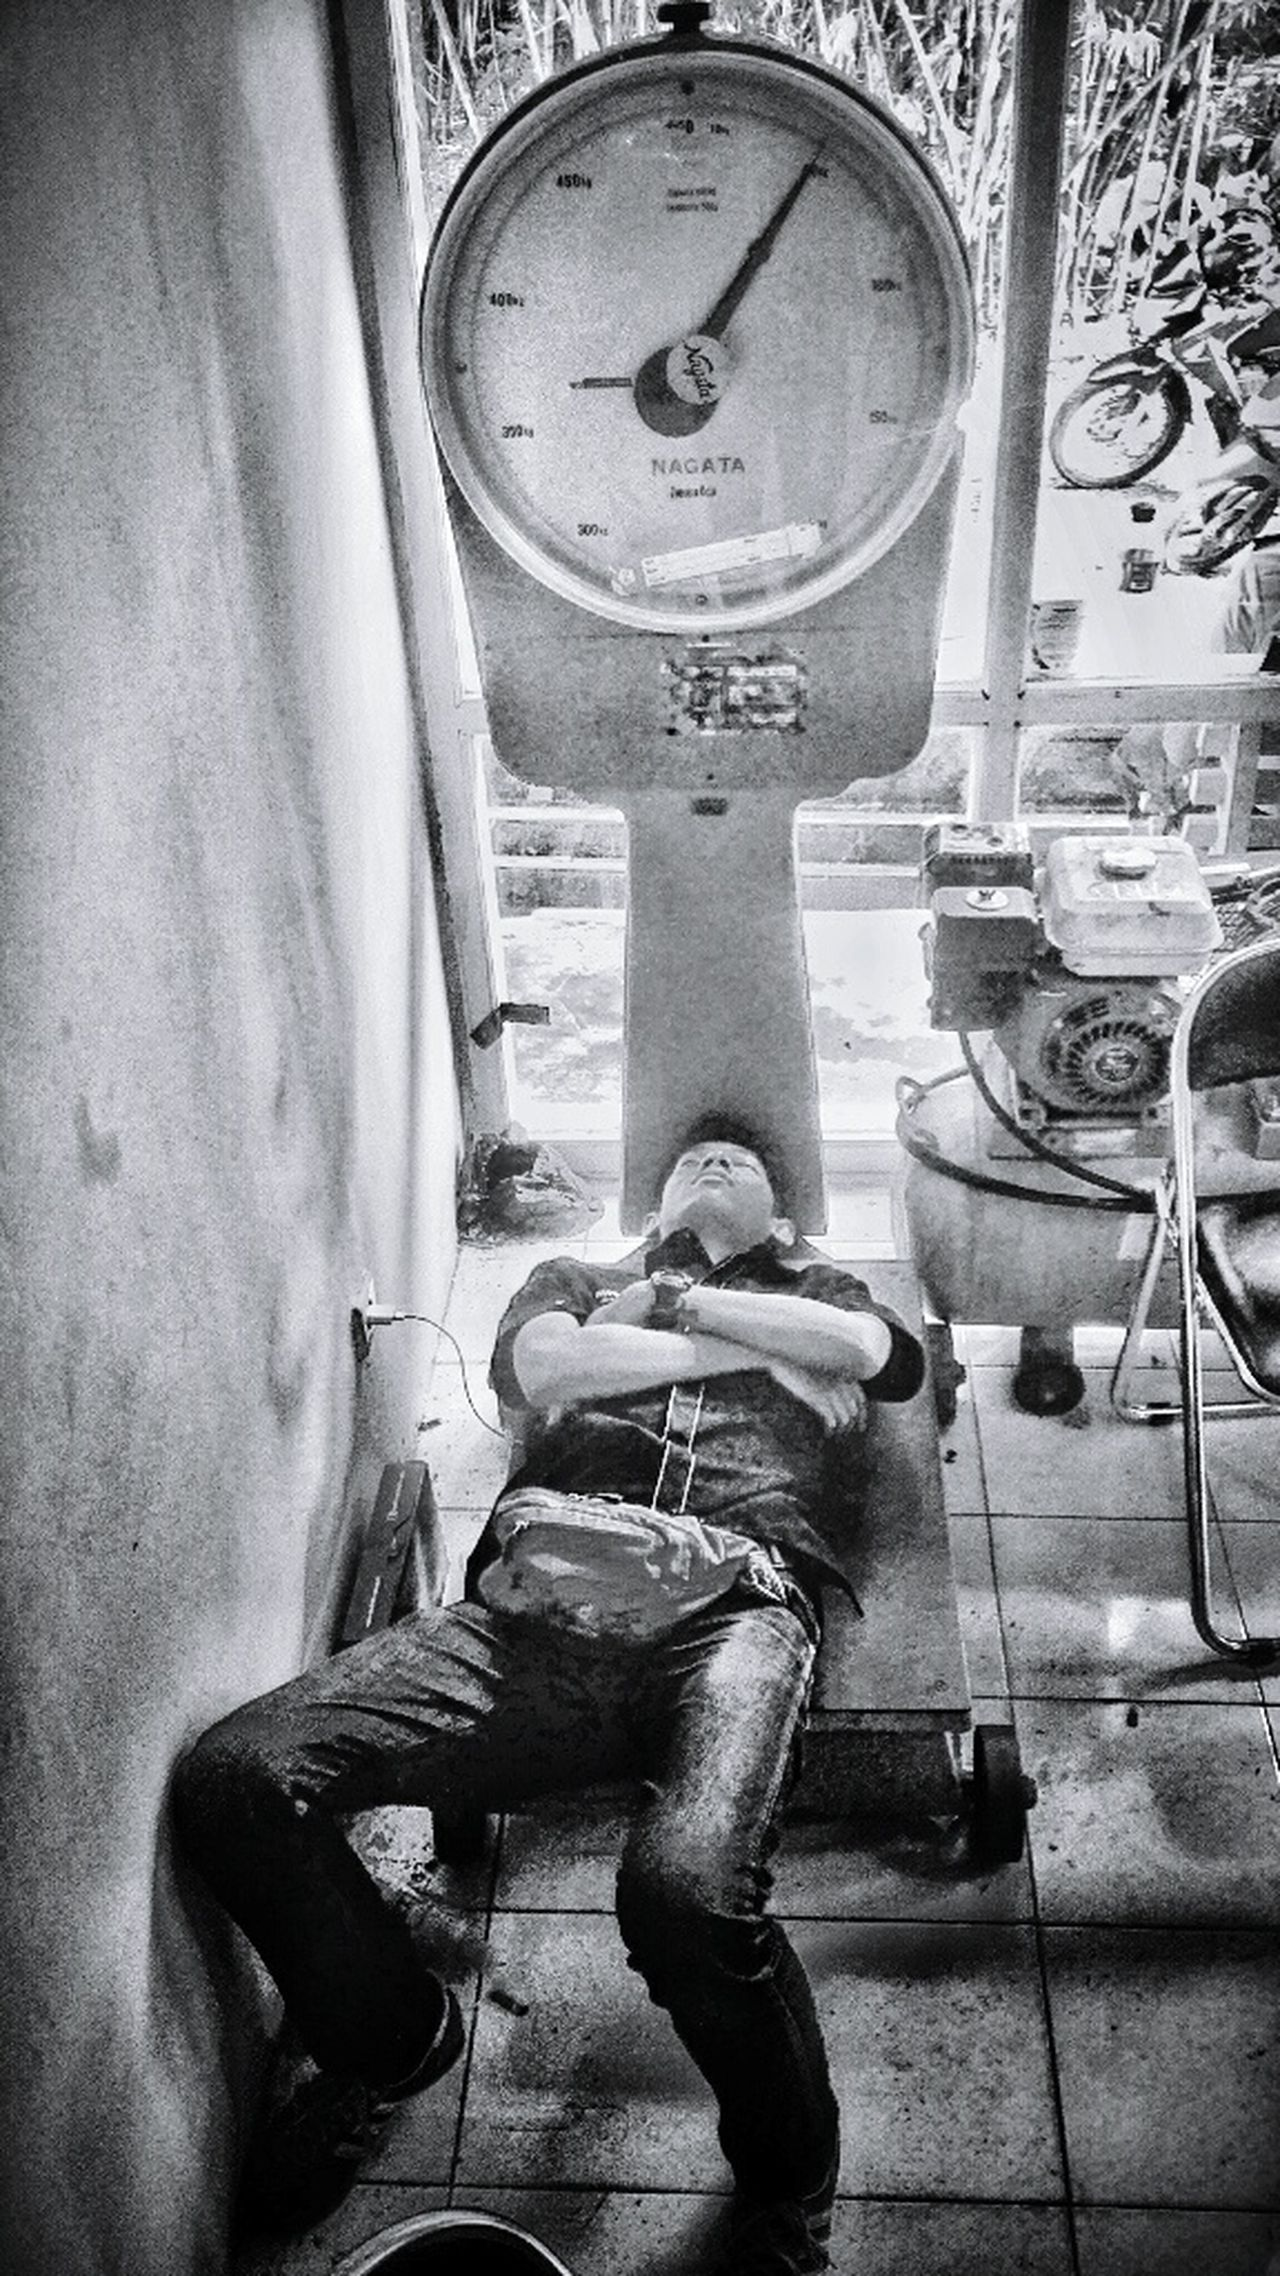 Only 50 kg Taking Photos Hello World Relaxing Enjoying Life Human Bwphotography Blackandwhite Photography Sleeping Tired! After Workout Fine Art Photography